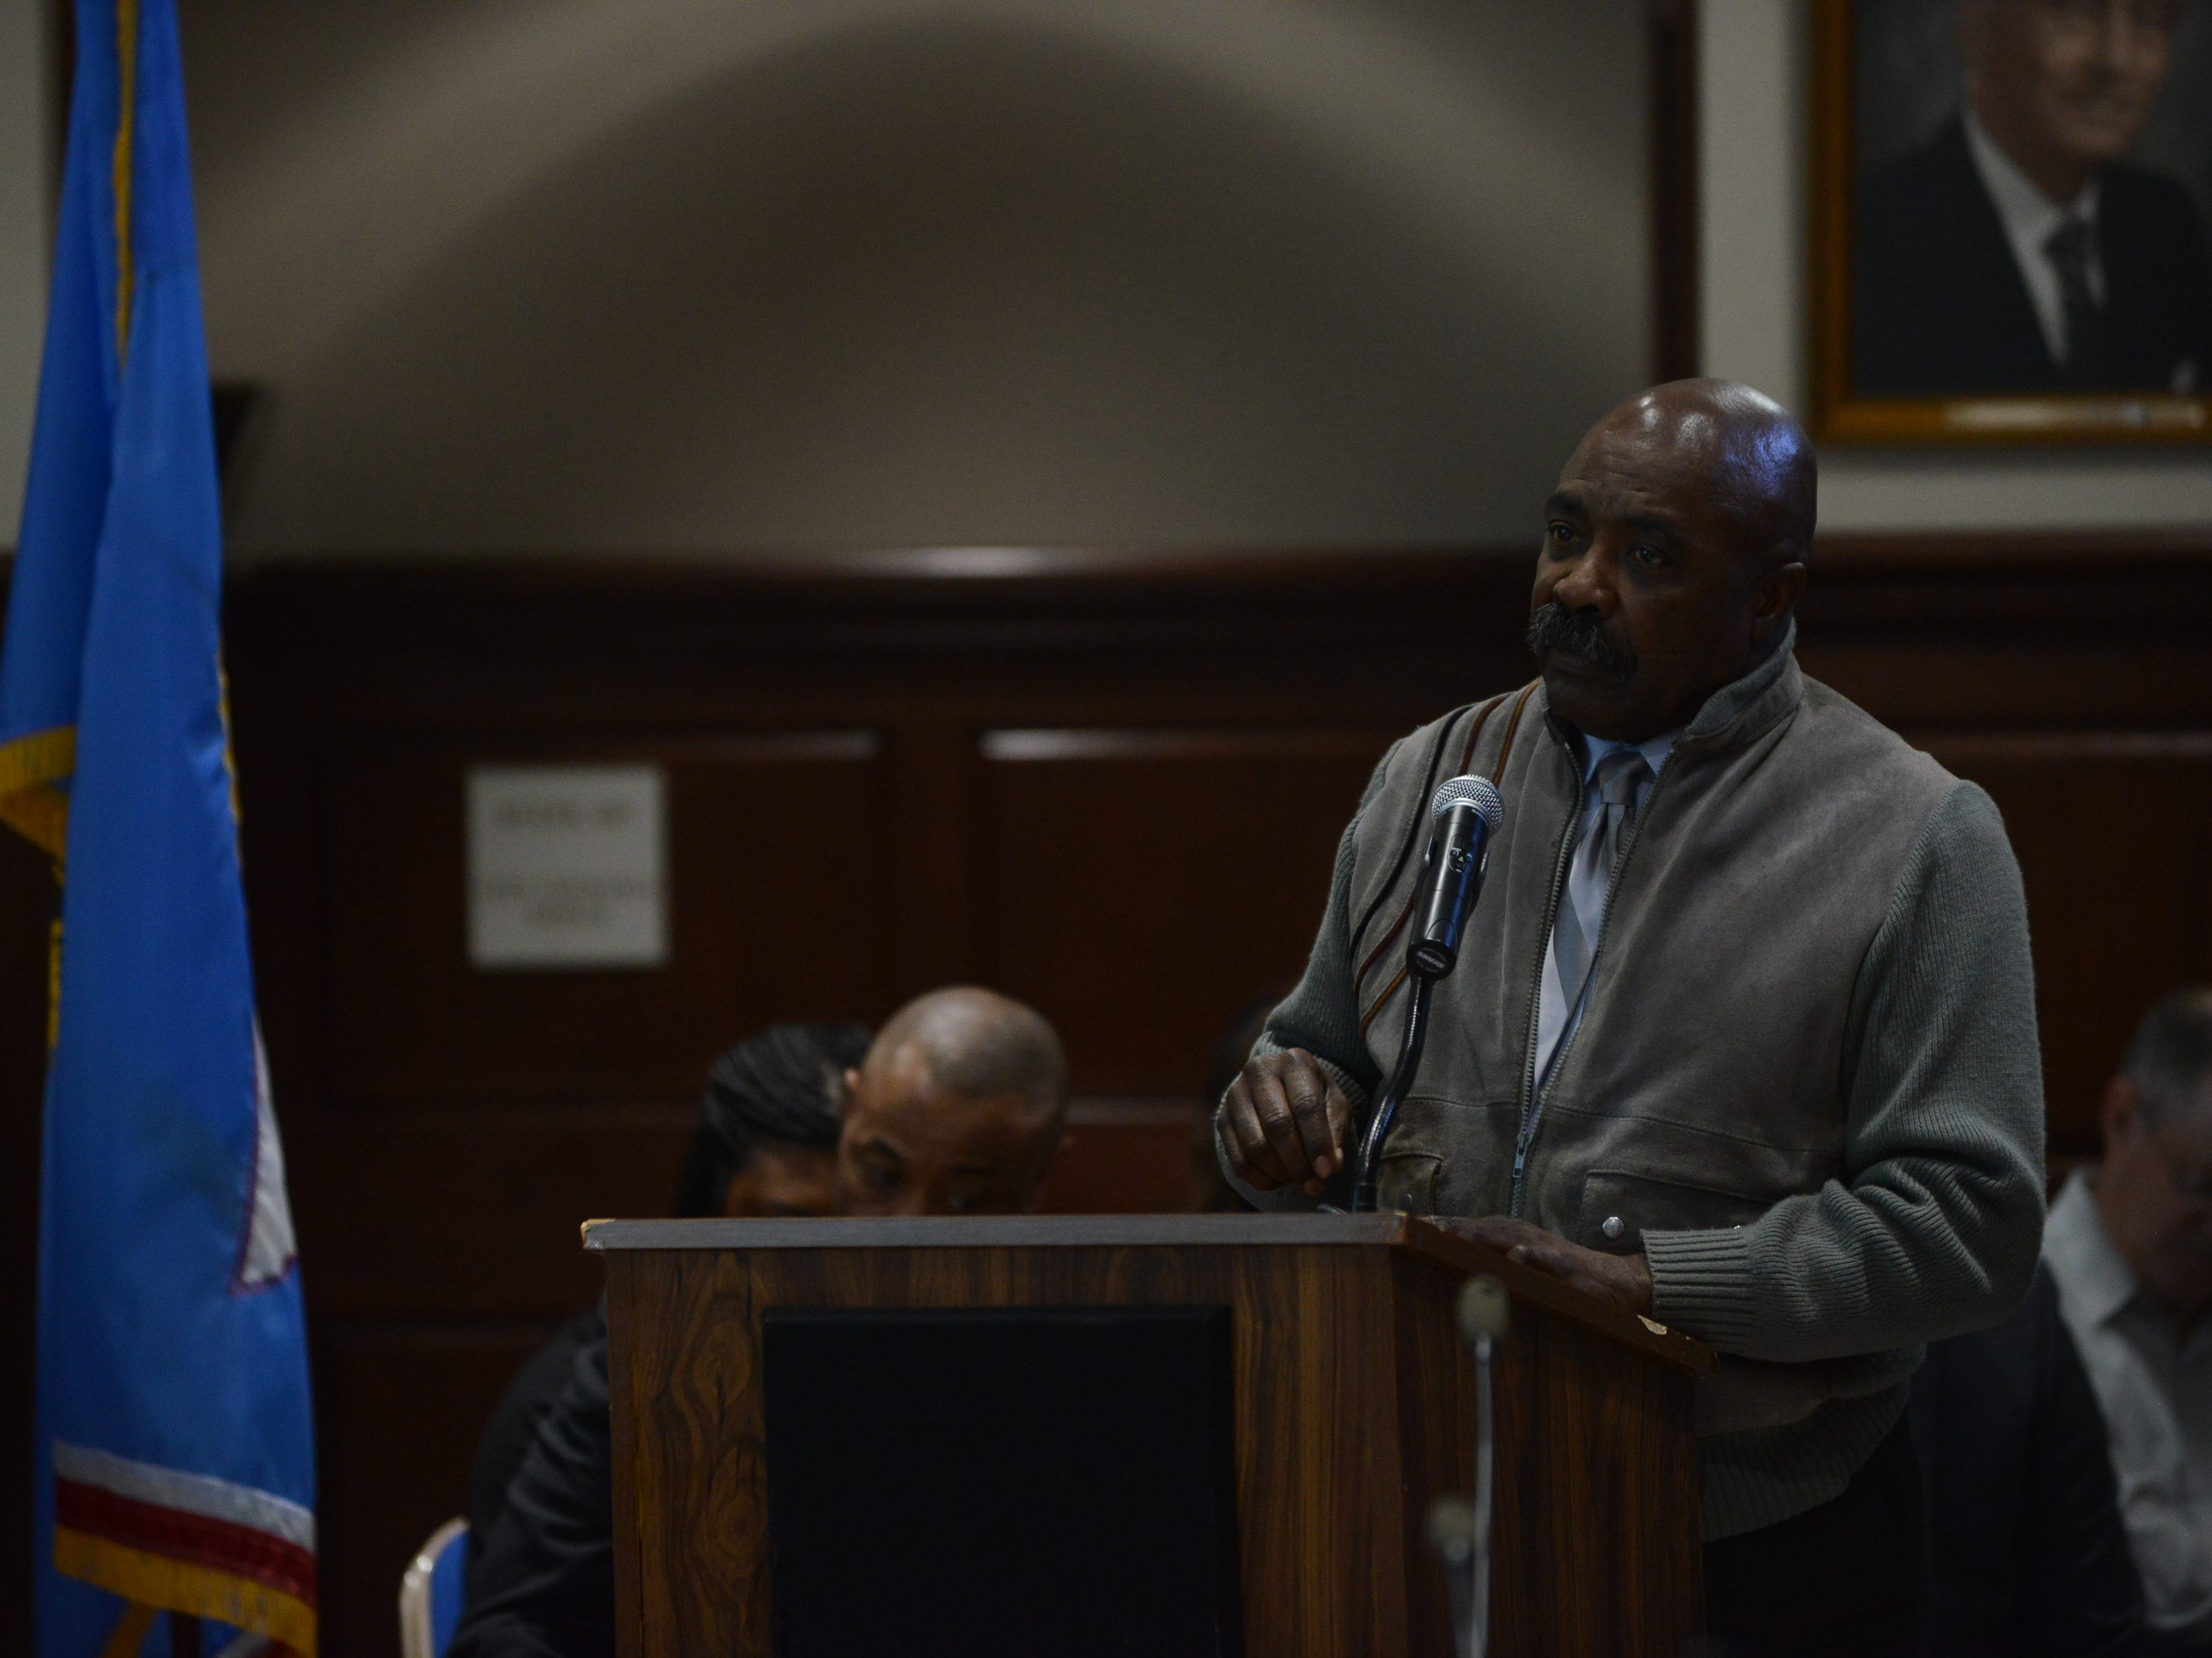 NAACP President Harrell Carter spoke about prioritizing funding during public comment at the JMC school board meeting at Jackson City Hall on Thursday night.